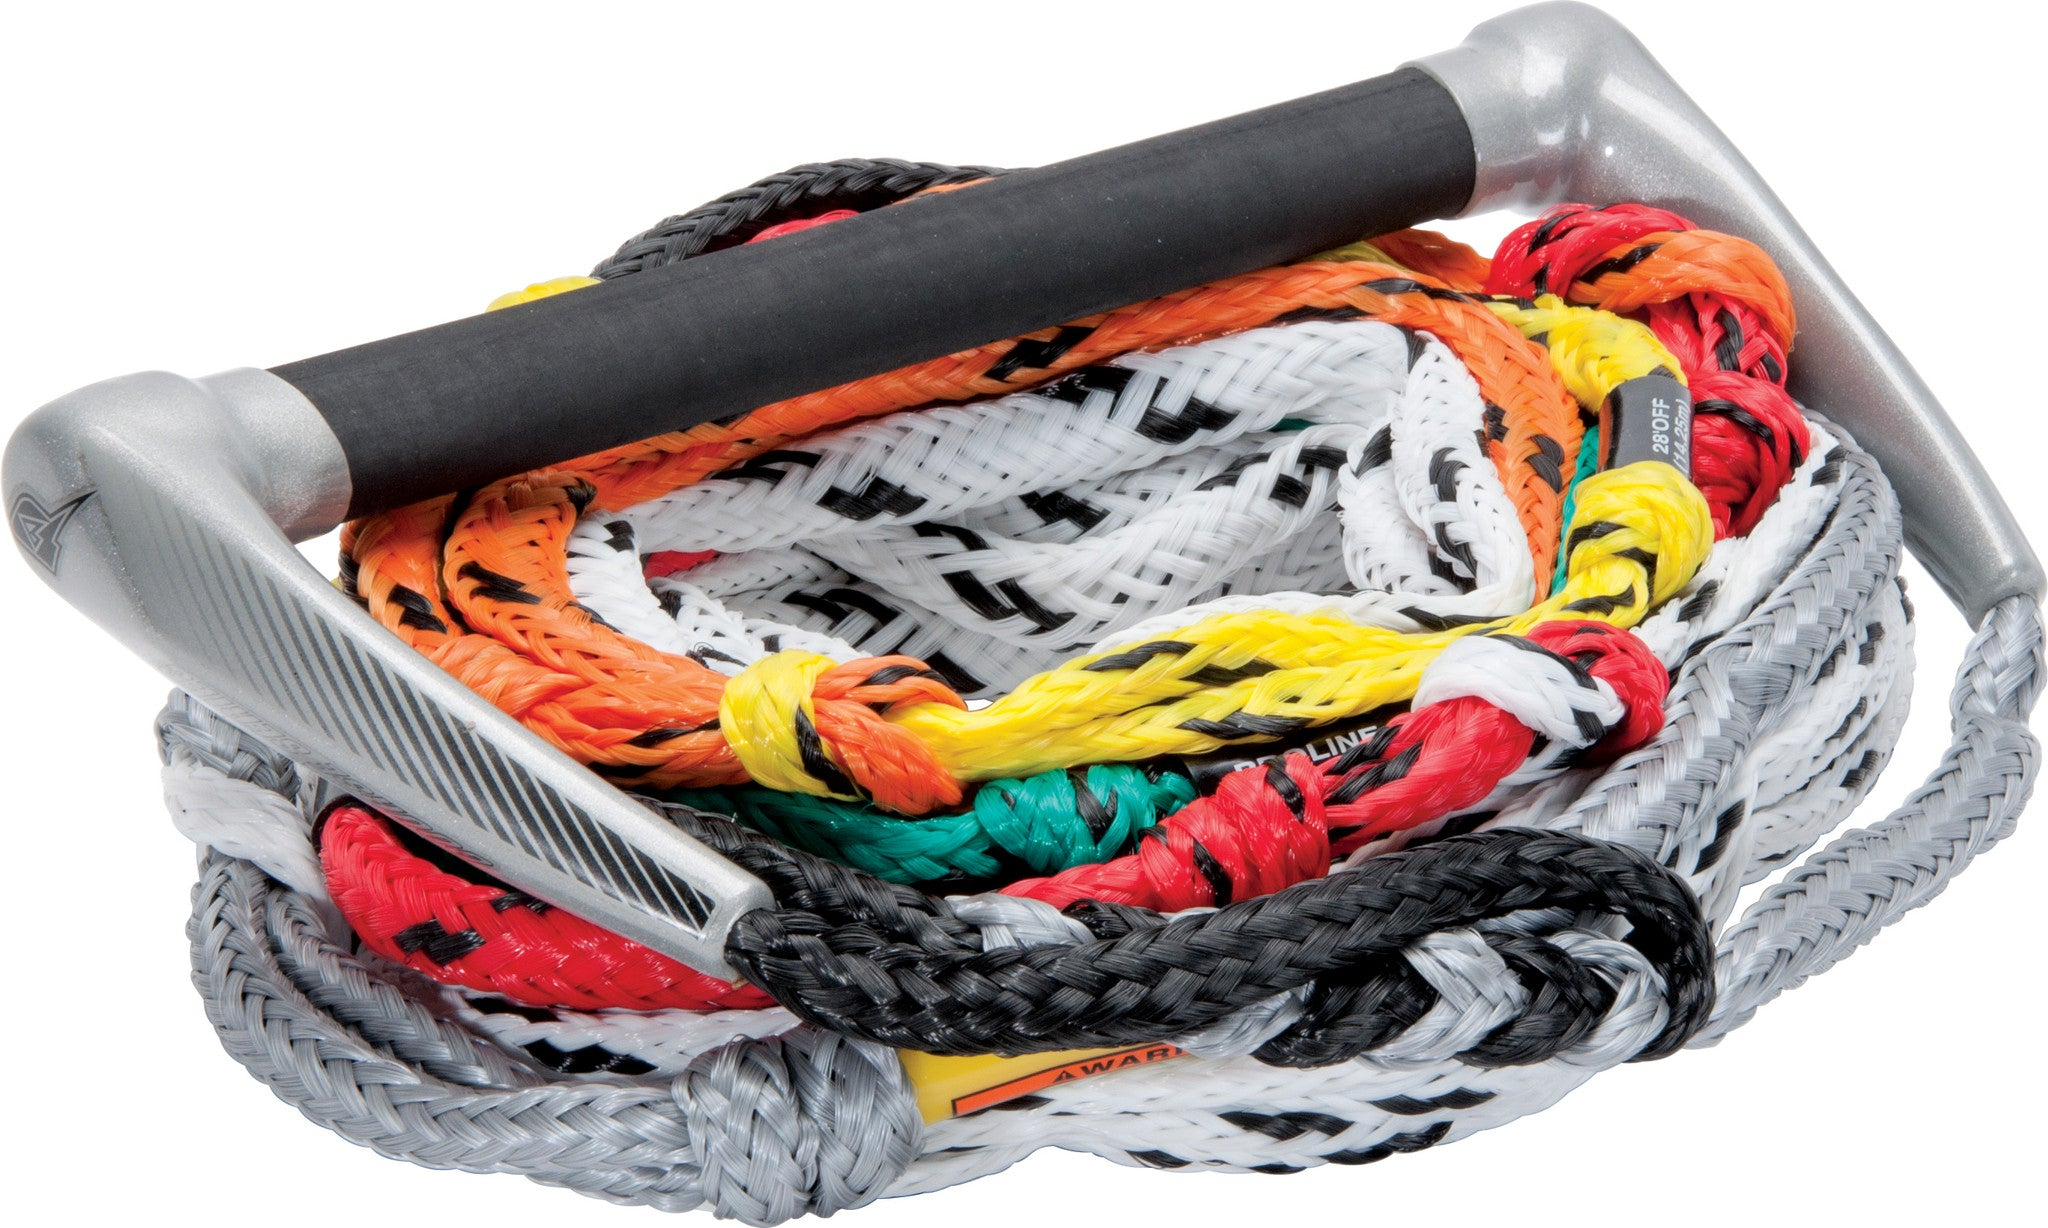 Pro Line Connelly Rope Handle Ski Package